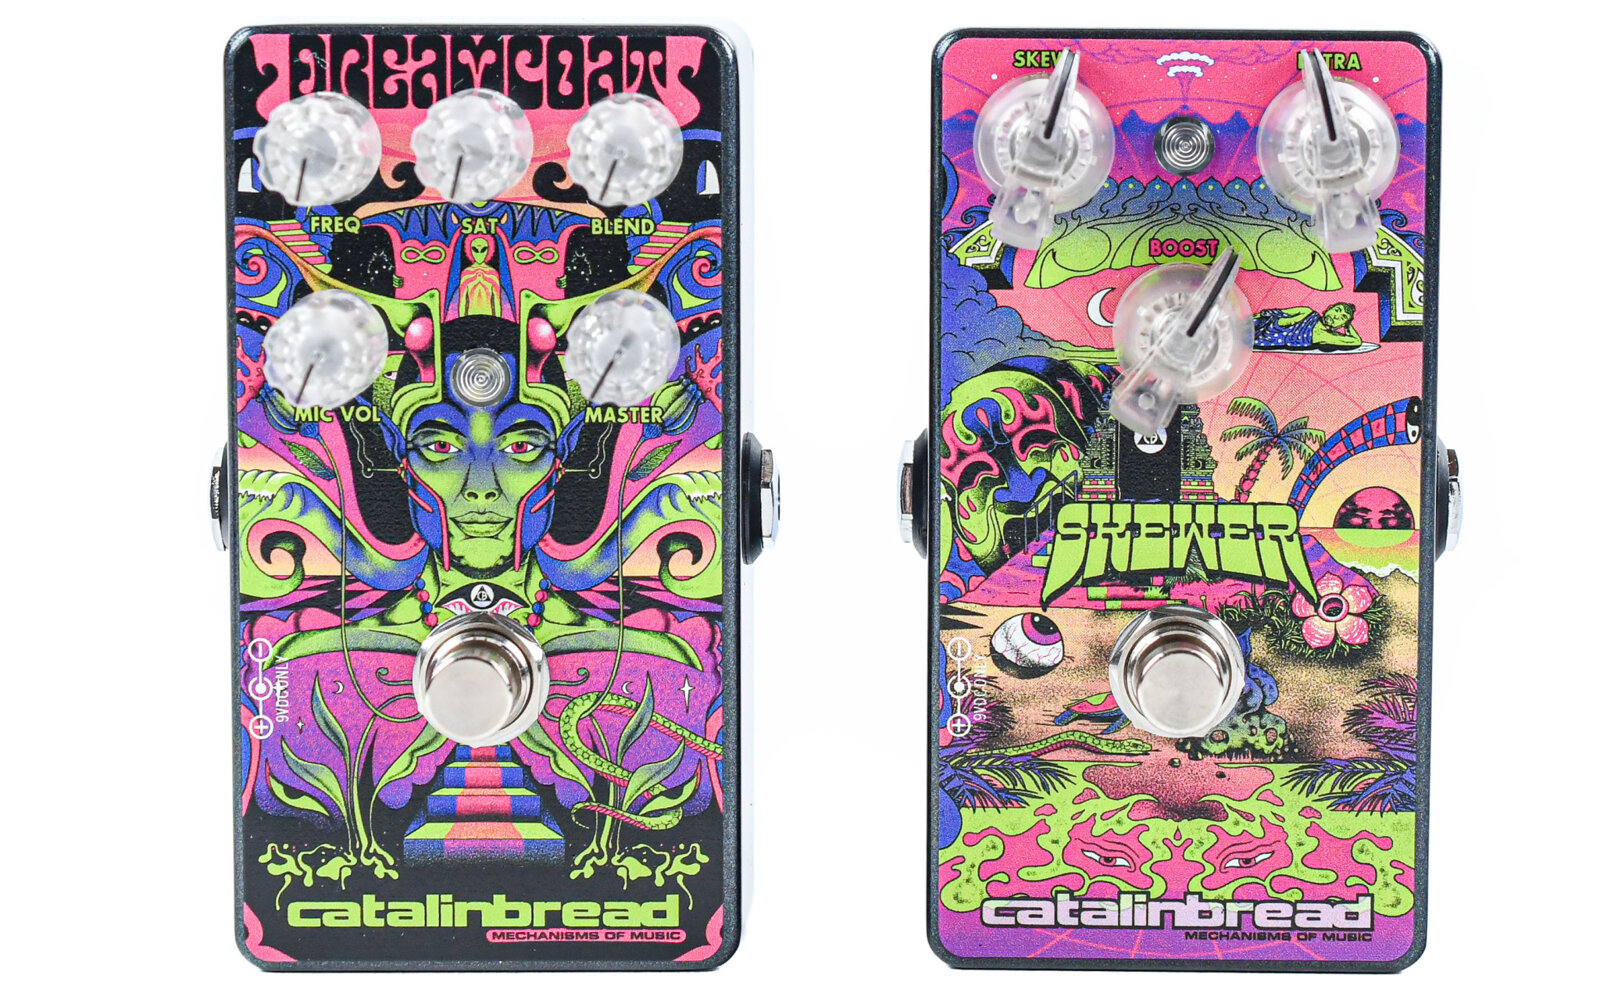 Catalinbread Dreamcoat Skewer Special Edition Box : photo 1